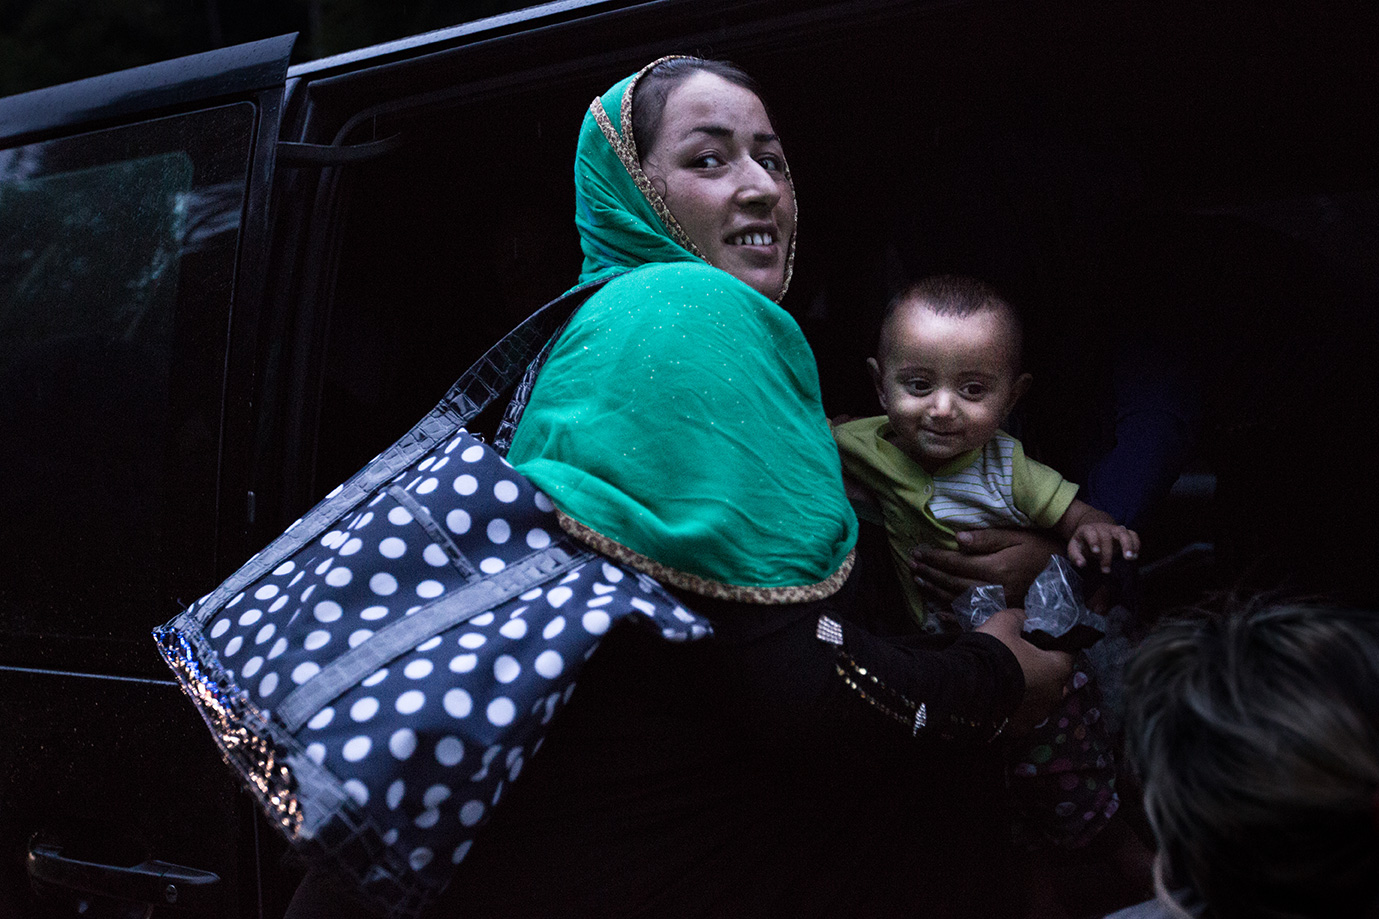 08_mother-baby-get-off-car-human trafficker-arriving-germany